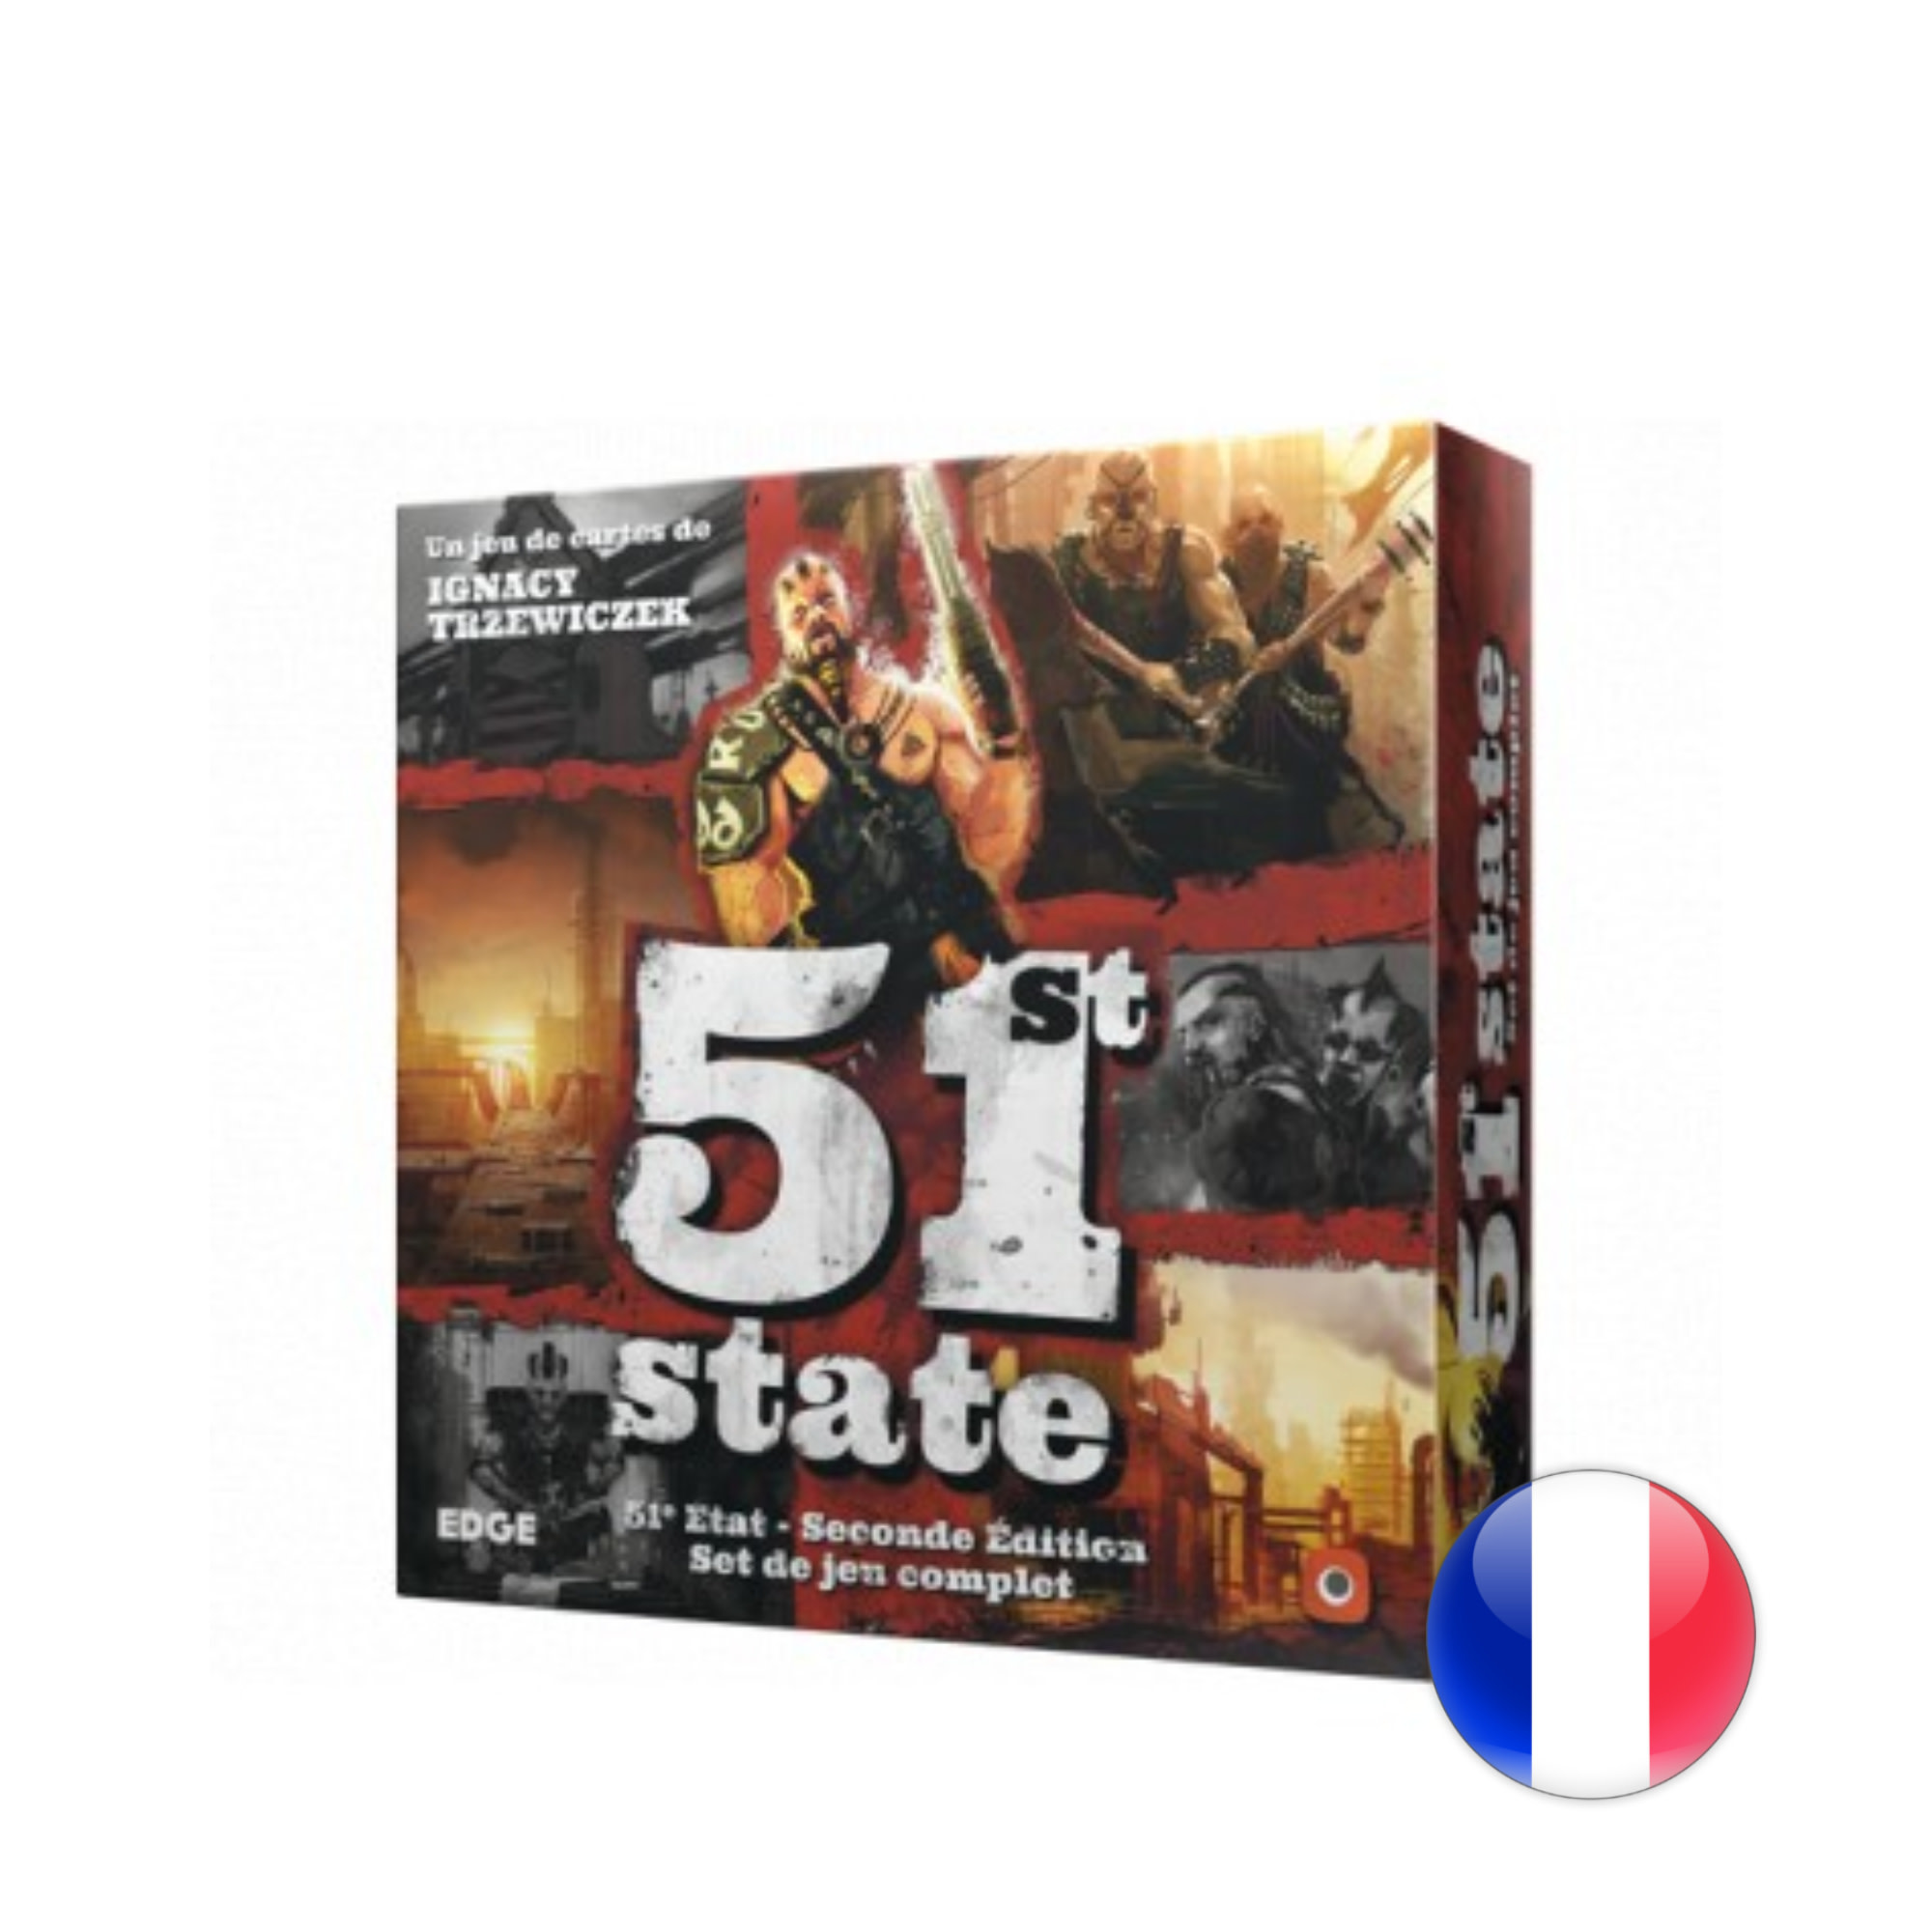 Edge Entertainment 51st State VF